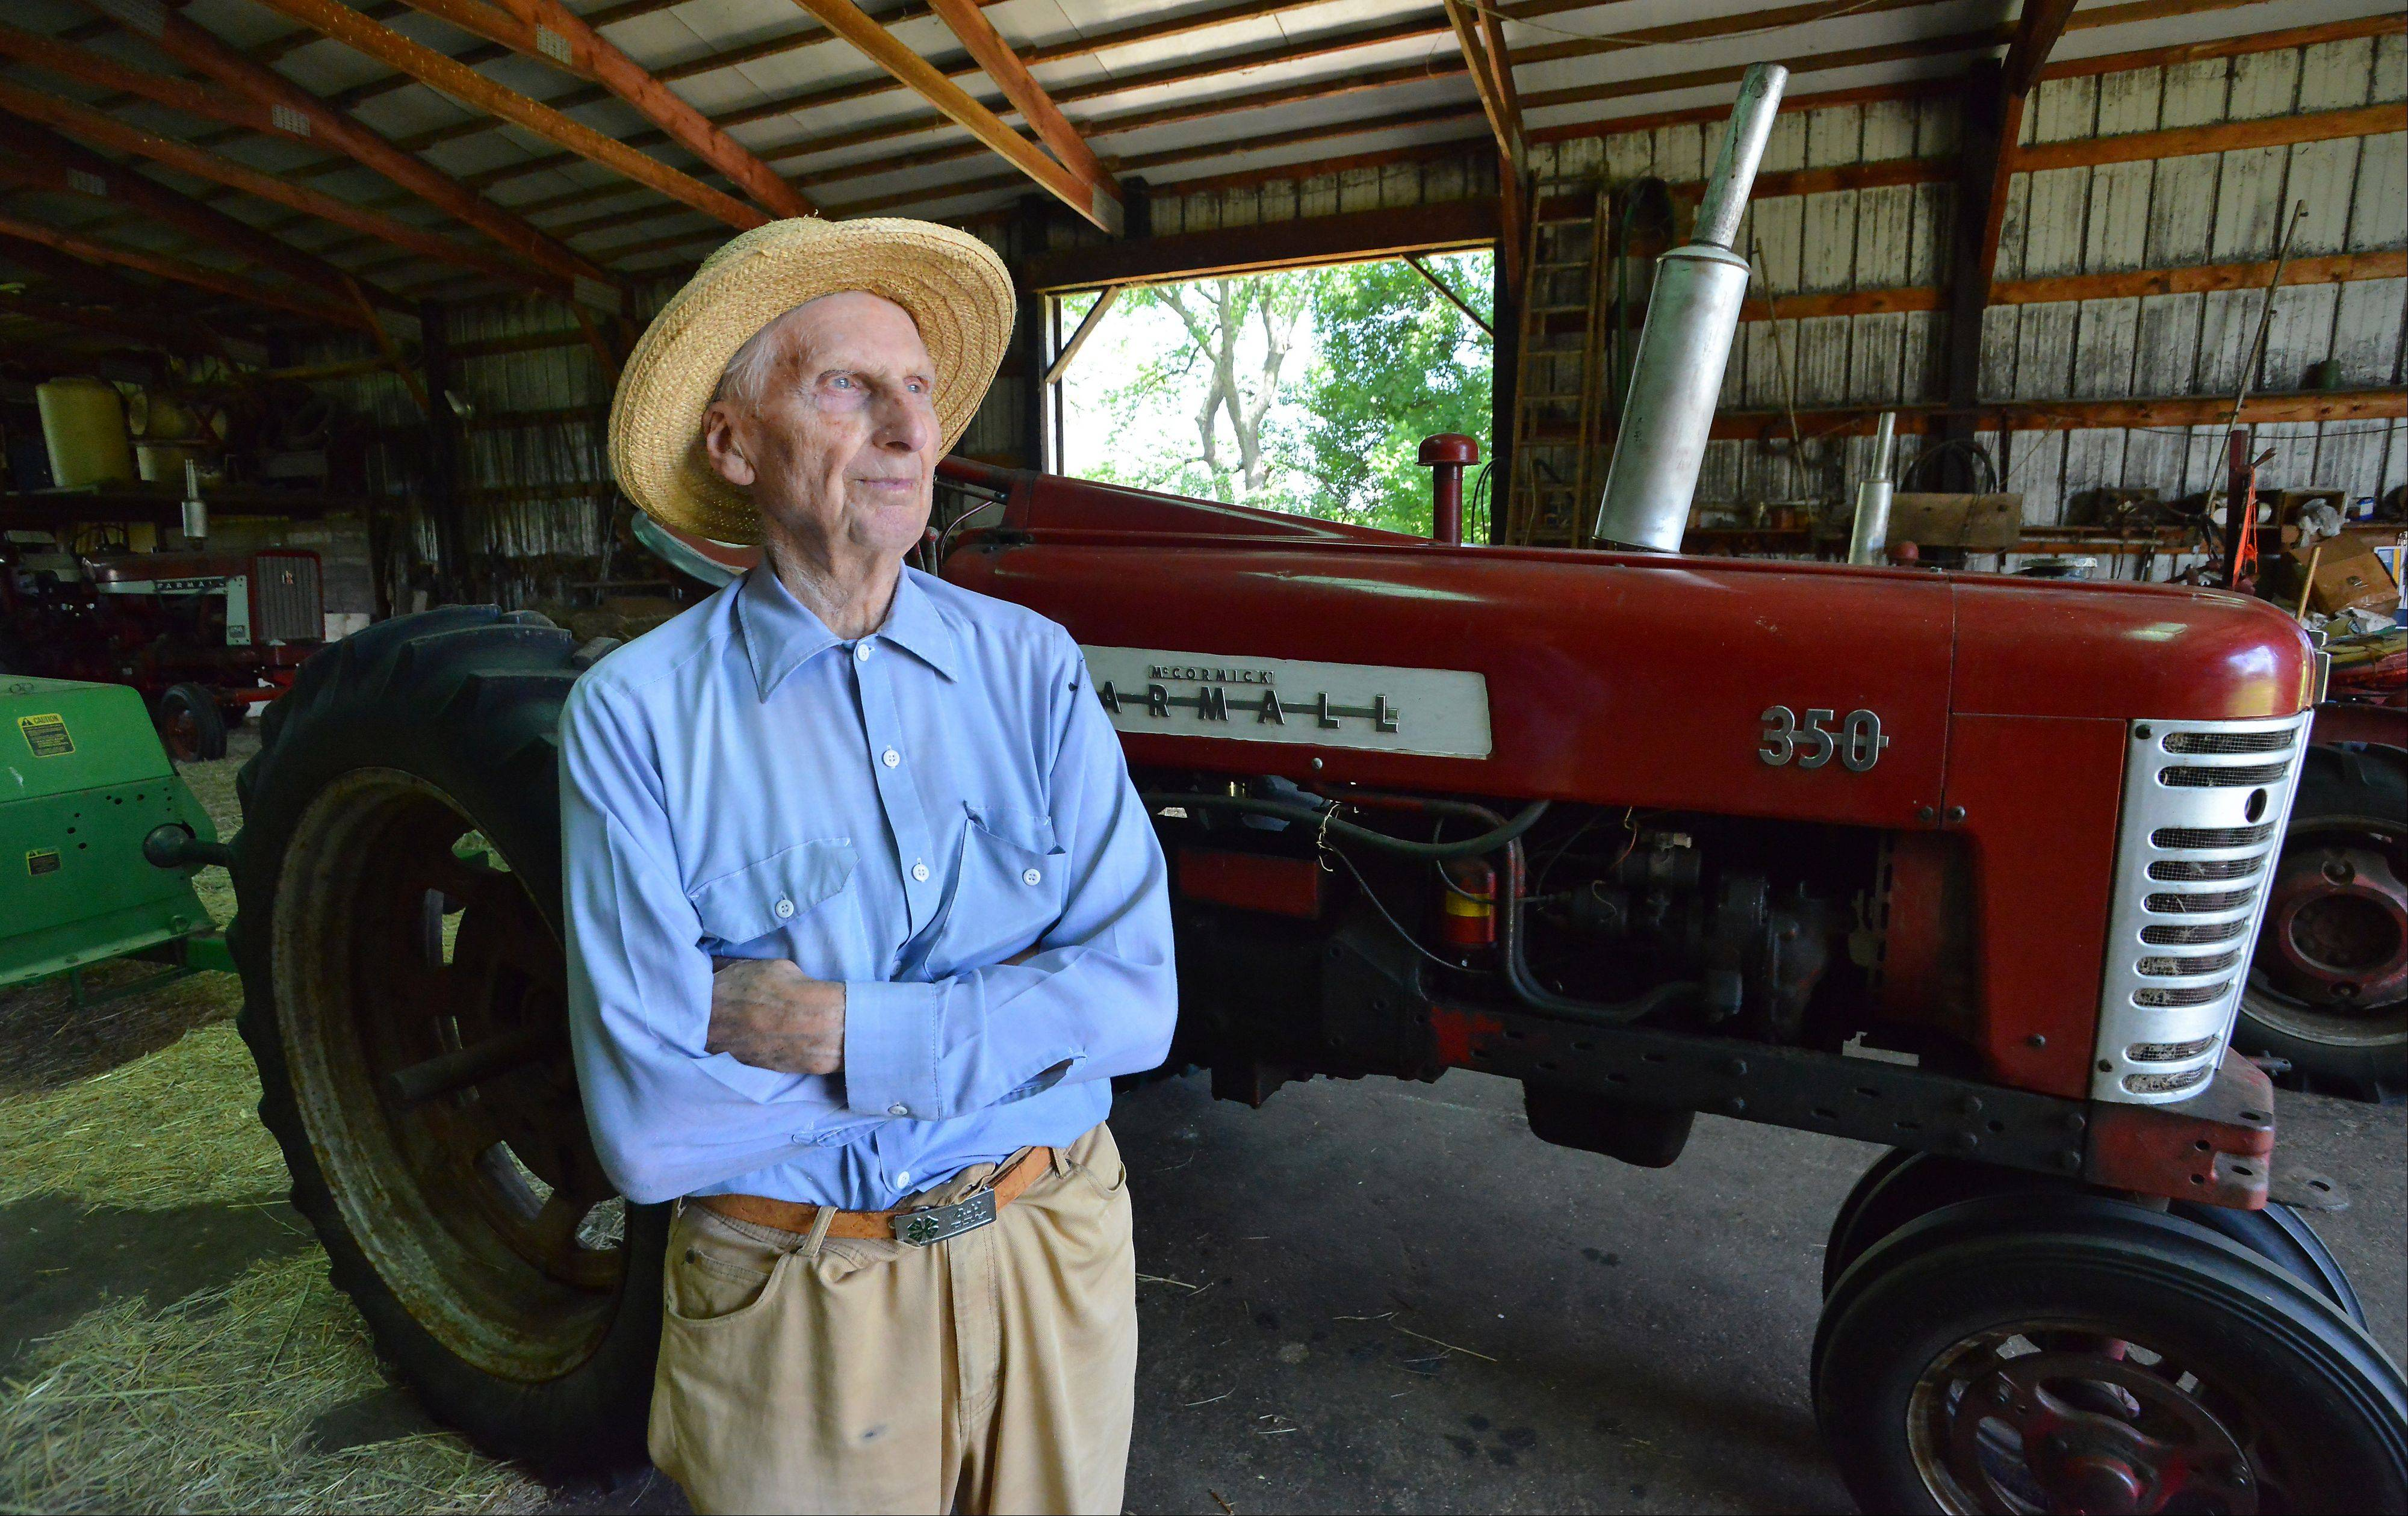 Harold Bergman, 97, of Hoffman Estates talks about being the oldest farmer in Cook County in his barn next to the tractor he still uses to bale hay.